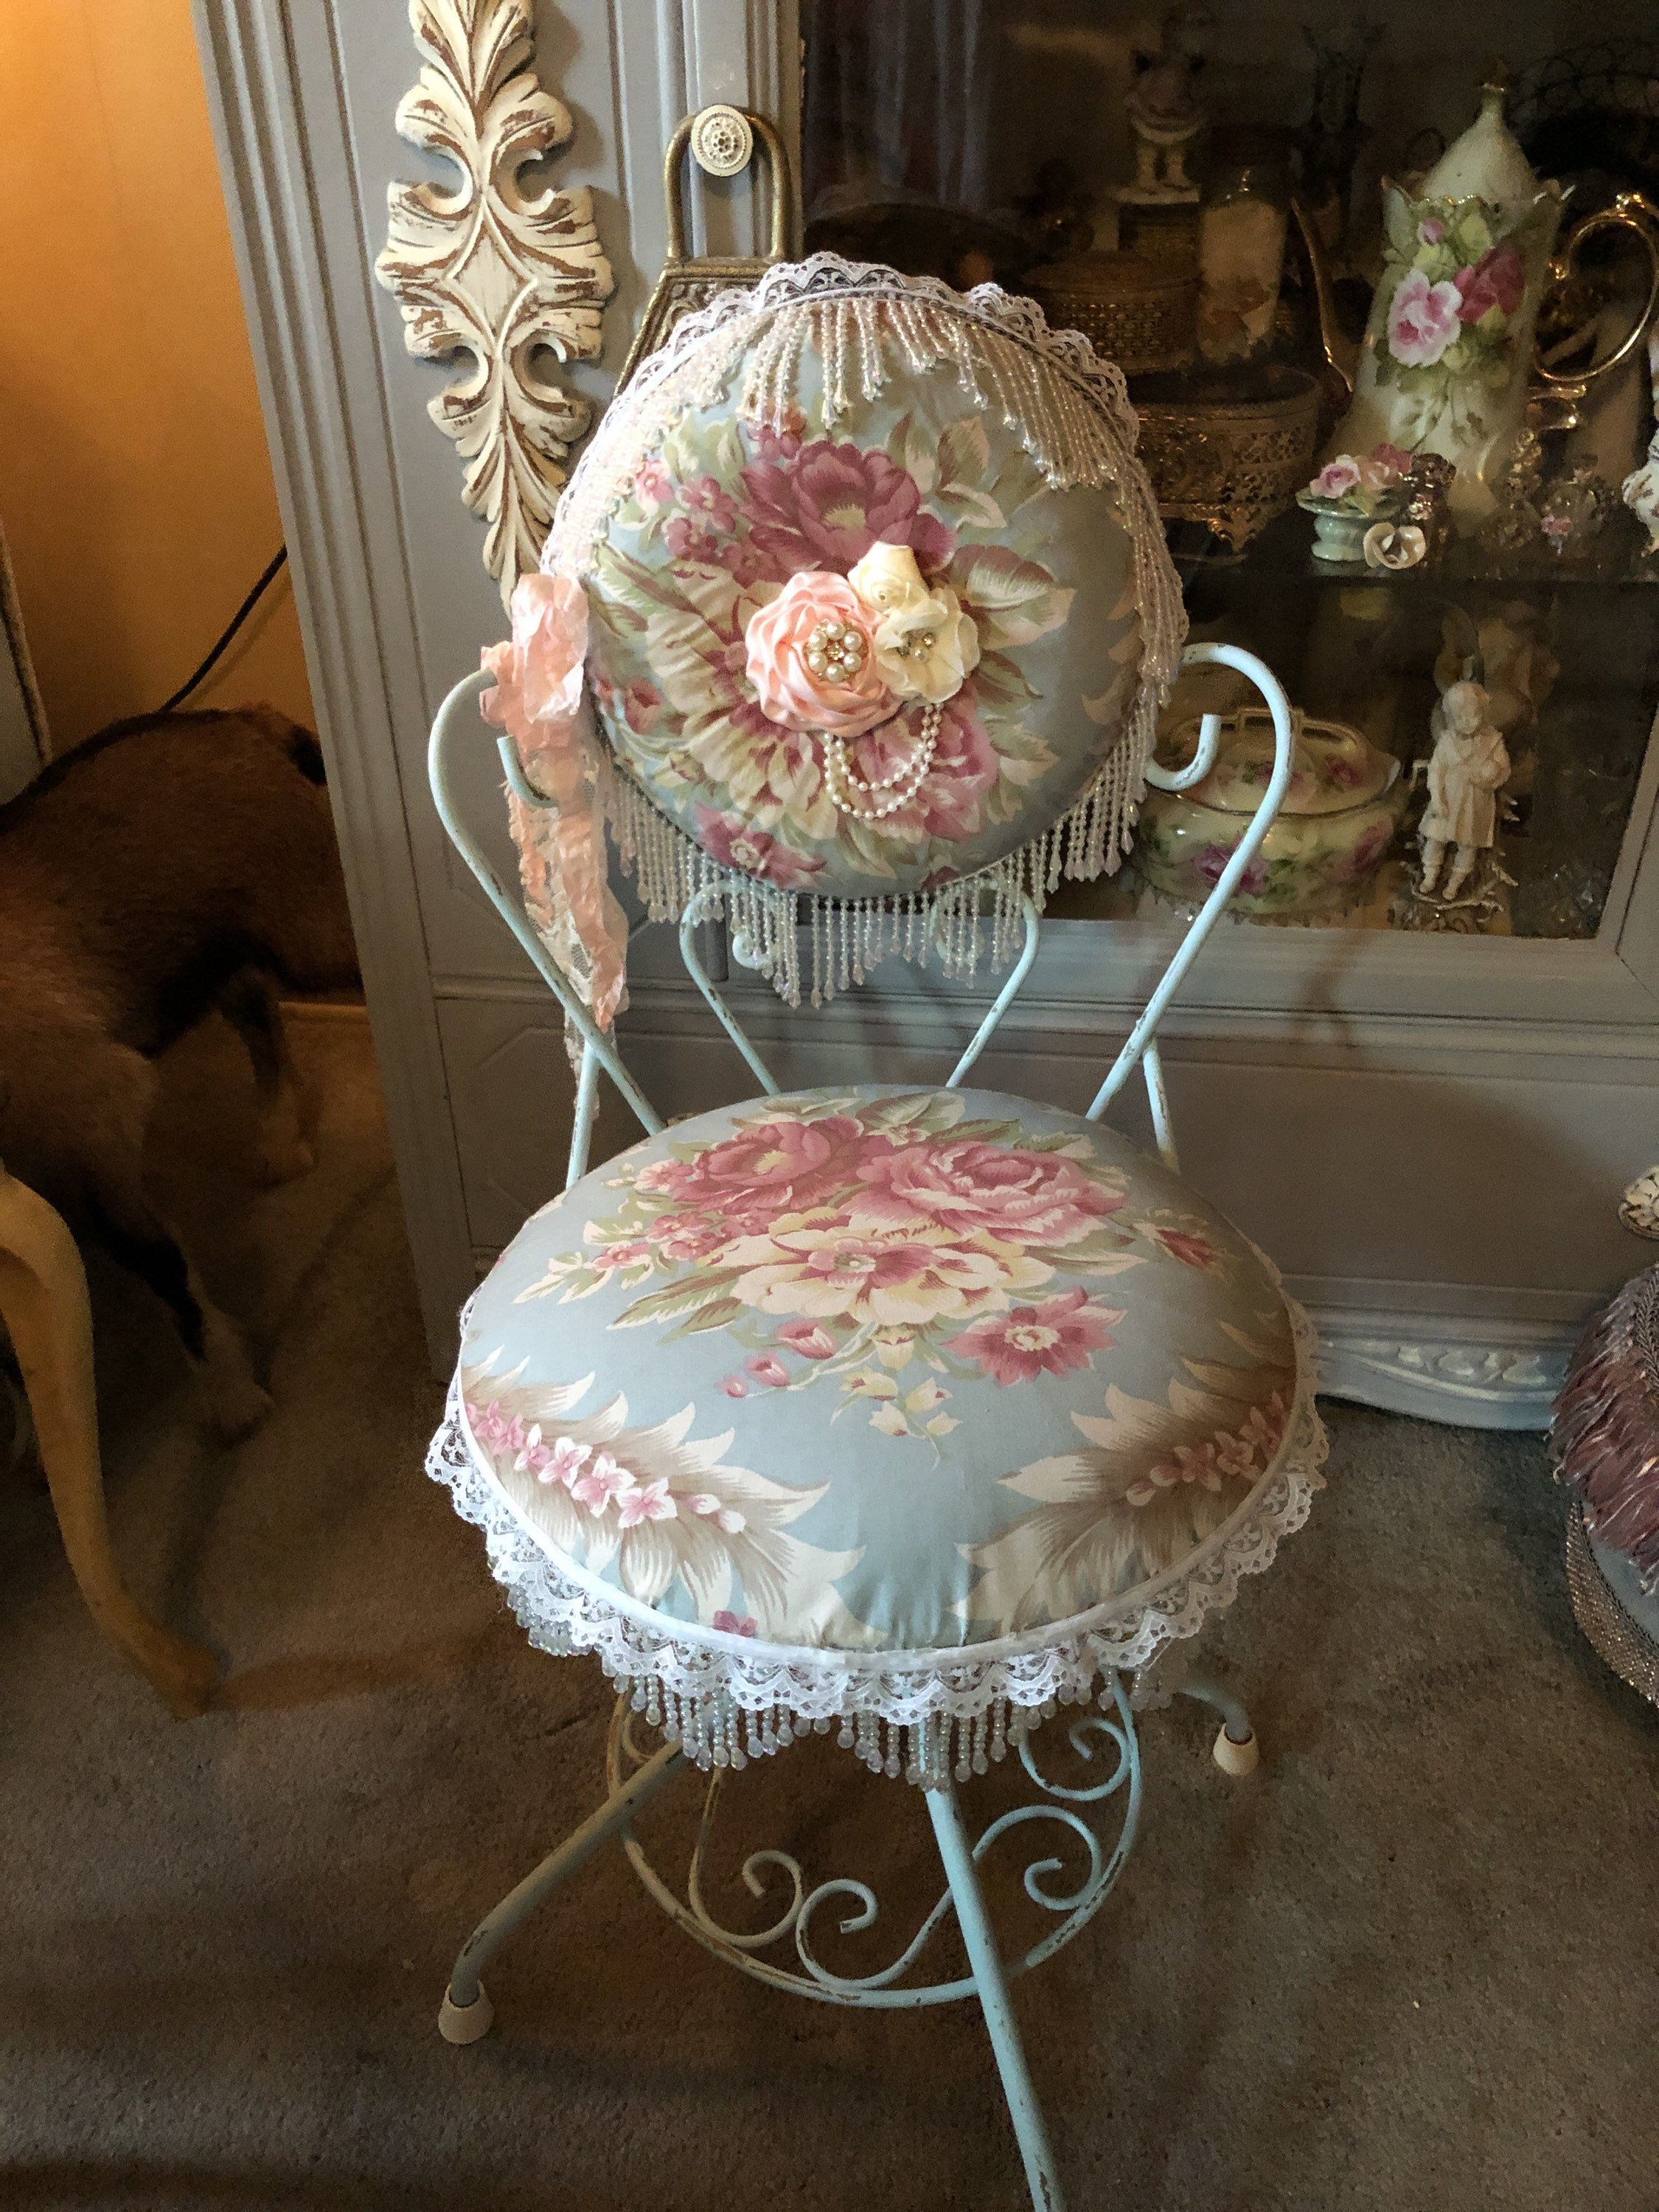 Charming Vanity Chair Metal Vanity Chair Shabby Chic French Etsy In 2020 Shabby Chic Chairs Metal Chairs Vanity Chair